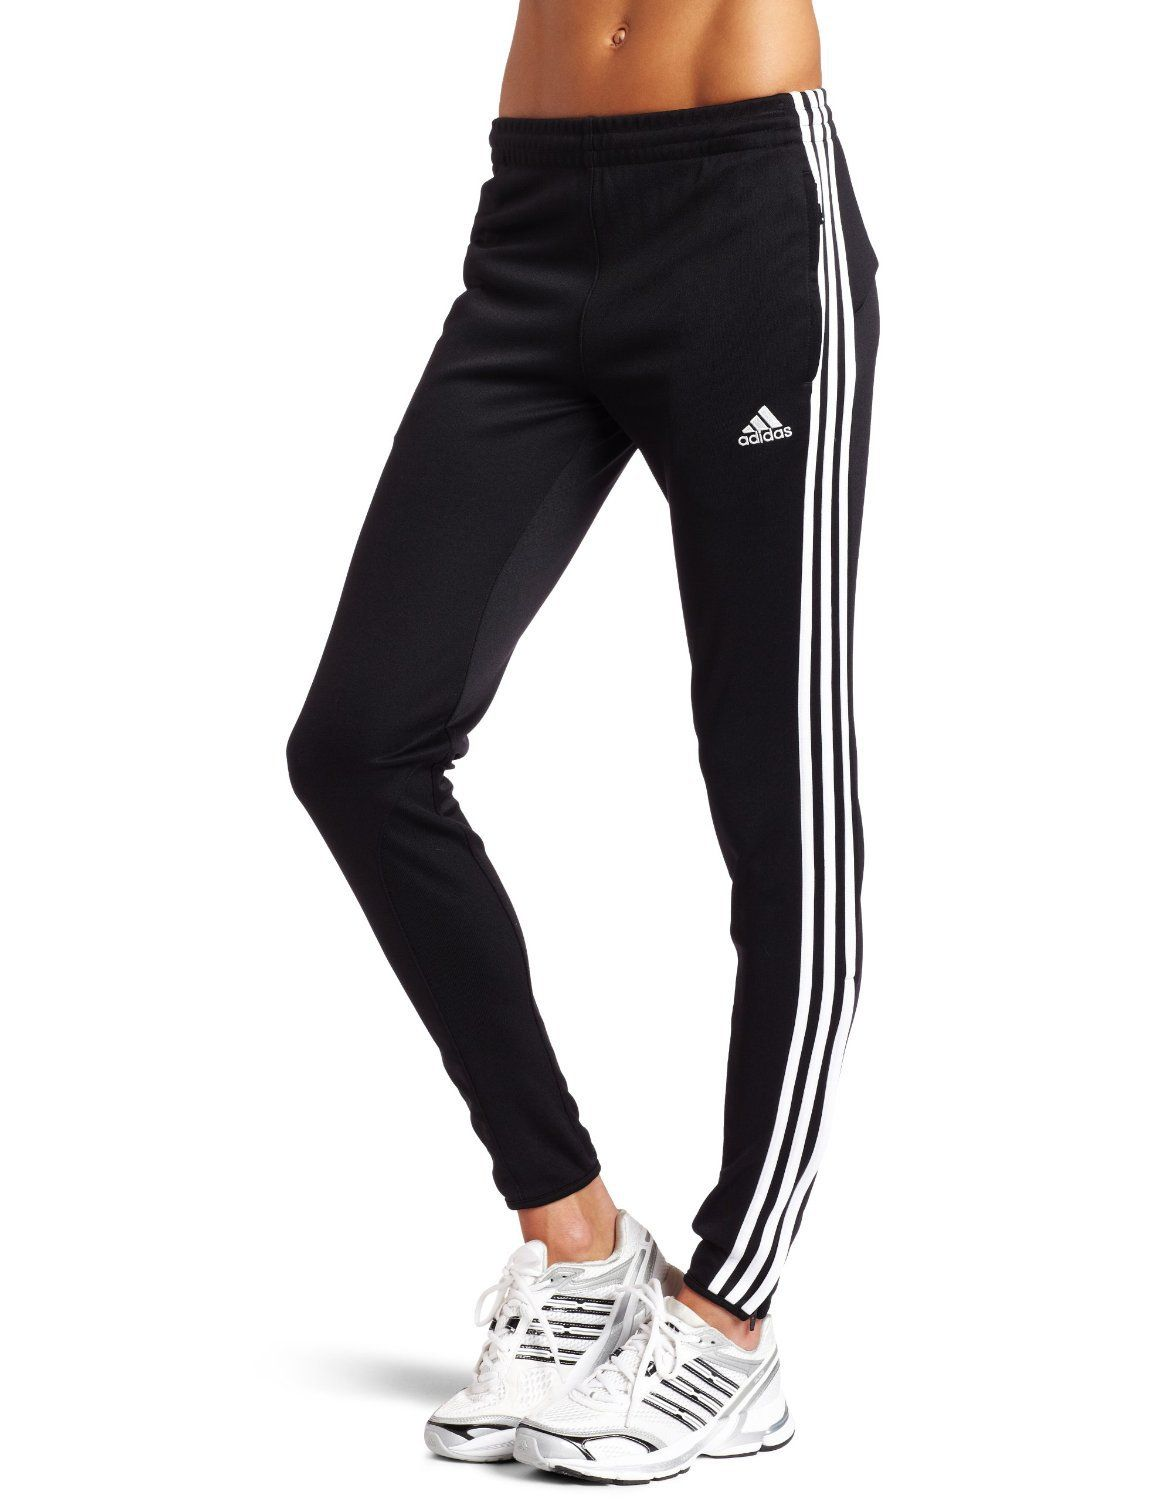 16 Best Soccer pants images | Soccer pants, Pants, Athletic